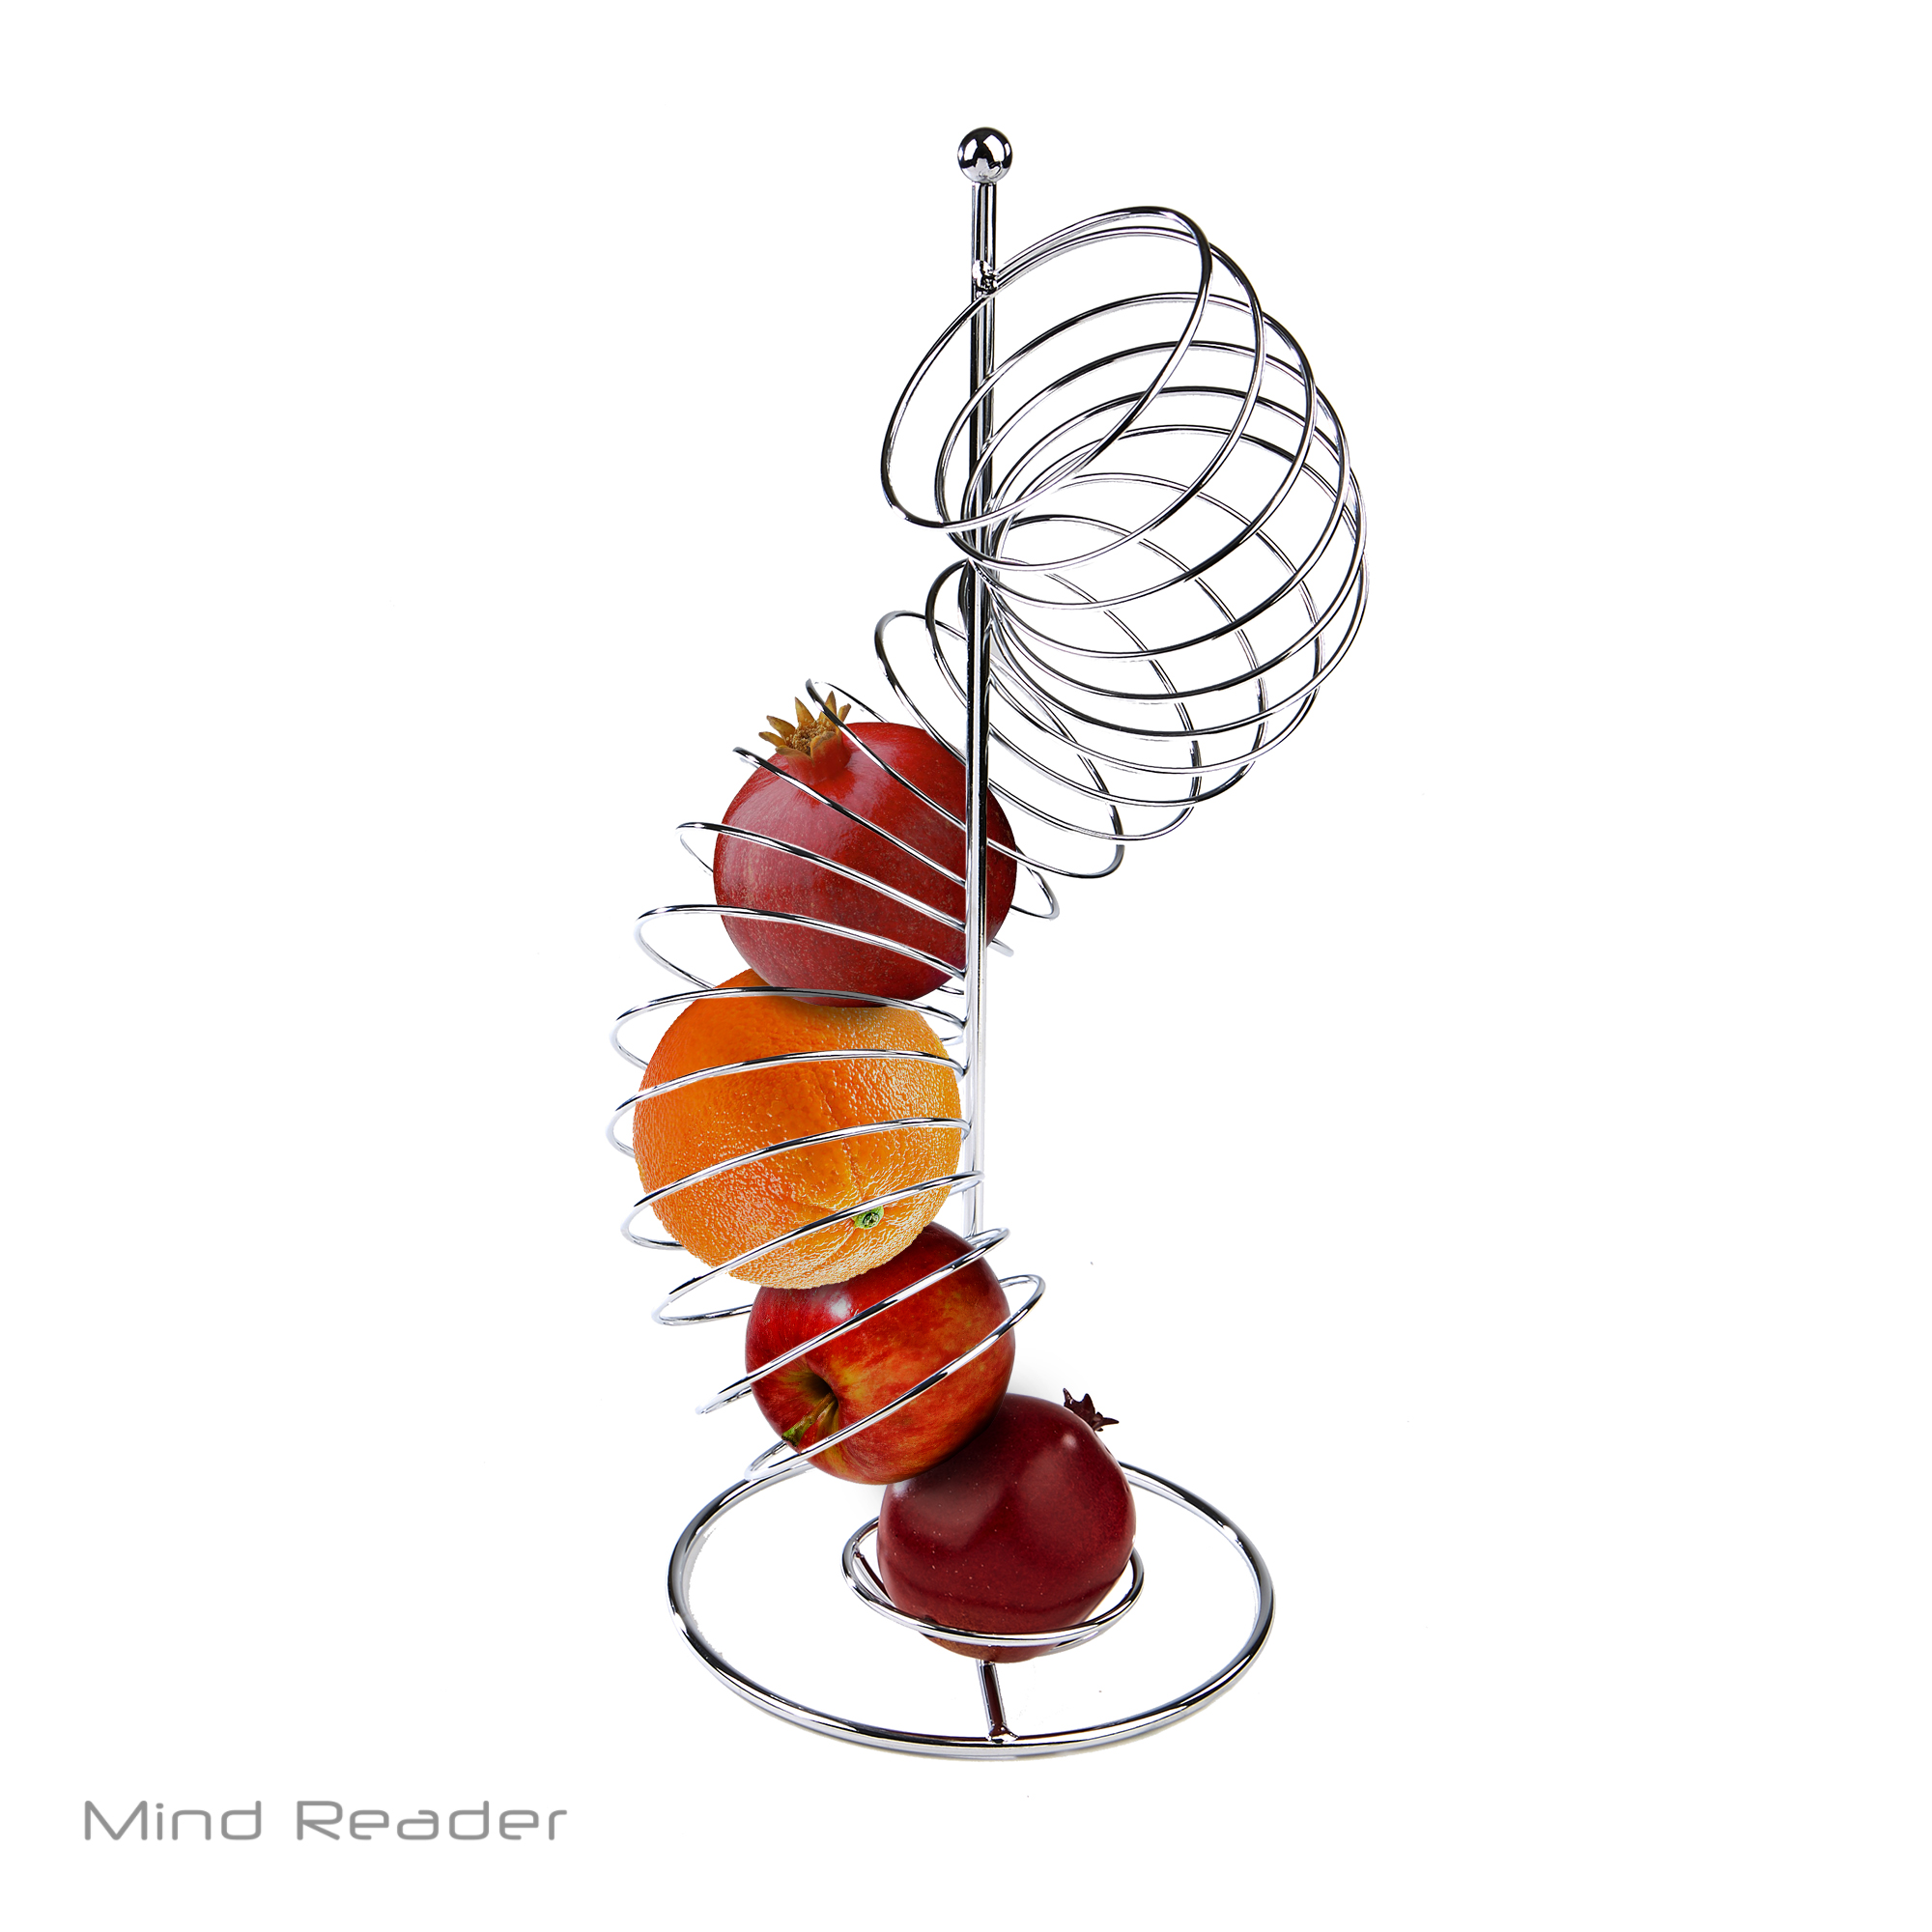 Mind Reader Stainless Steel Spiral Fruit Basket Holder, Silver